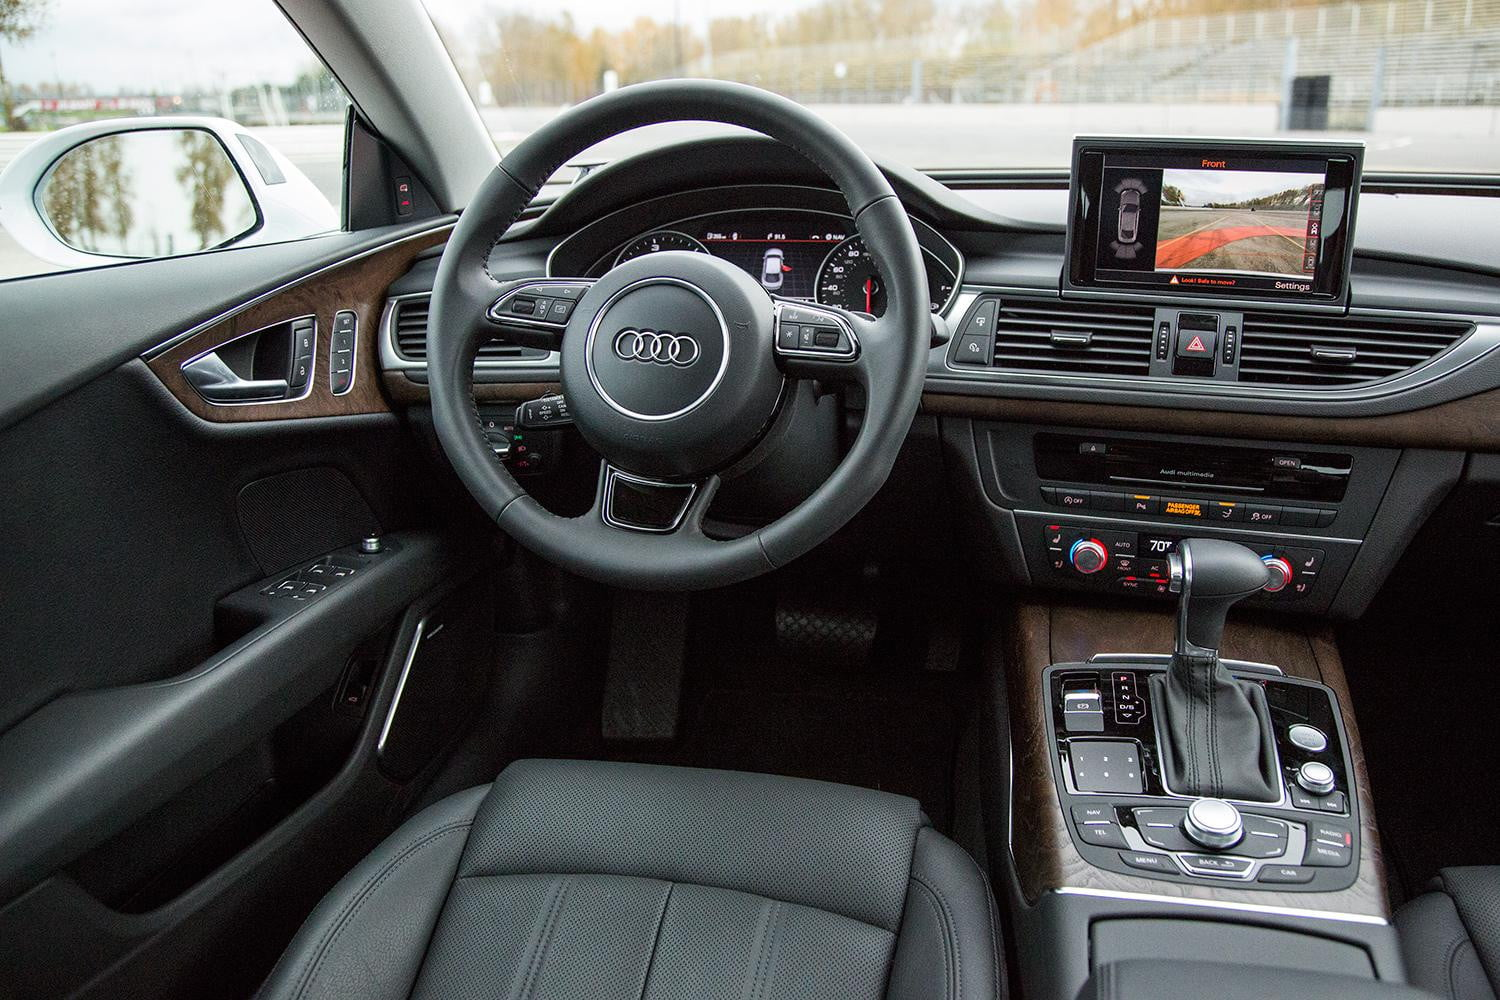 2014 Audi A7 Tdi Quattro Review Digital Trends